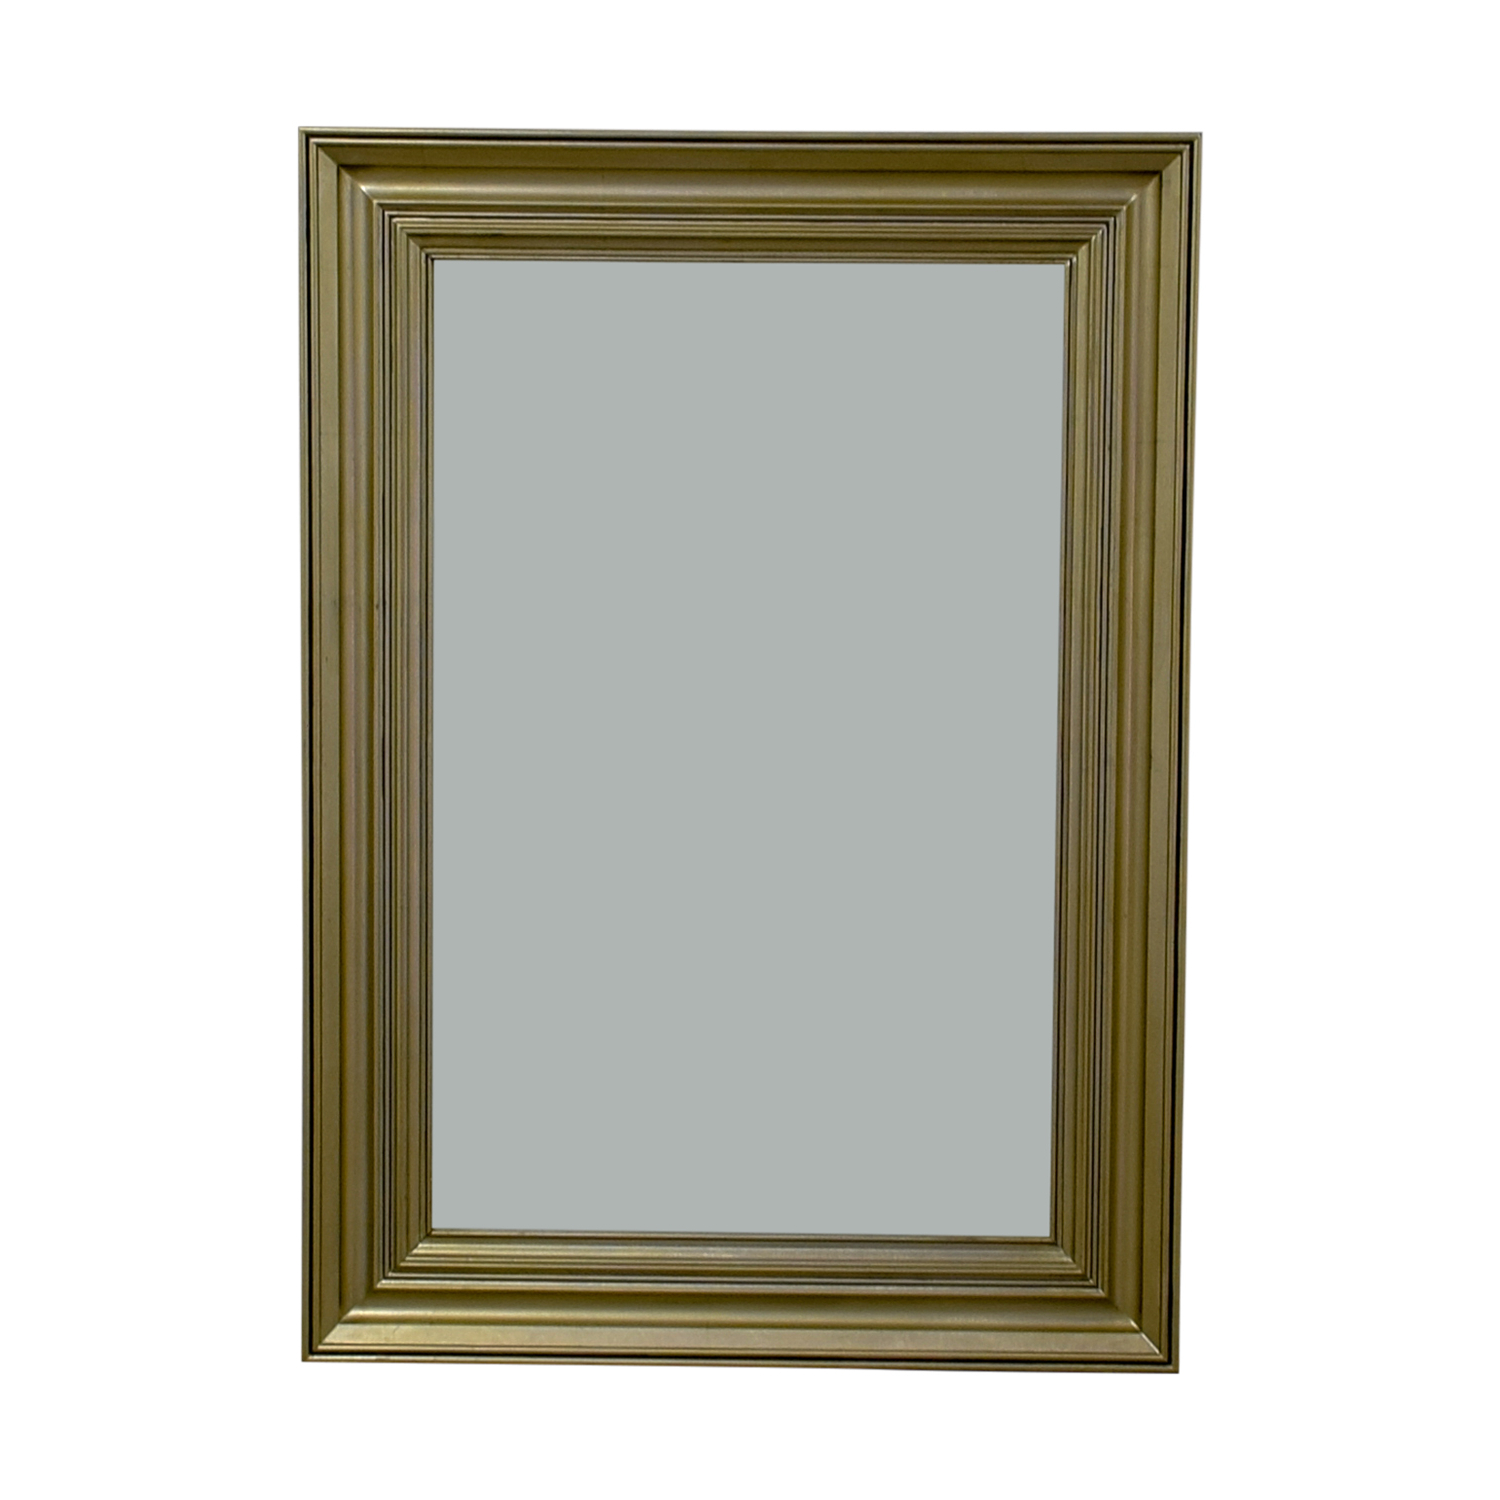 [%90% Off – Pottery Barn Pottery Barn Gold Framed Wall Mirror / Decor Pertaining To Most Recent Pottery Barn Wall Mirrors|pottery Barn Wall Mirrors Throughout Fashionable 90% Off – Pottery Barn Pottery Barn Gold Framed Wall Mirror / Decor|most Popular Pottery Barn Wall Mirrors With Regard To 90% Off – Pottery Barn Pottery Barn Gold Framed Wall Mirror / Decor|trendy 90% Off – Pottery Barn Pottery Barn Gold Framed Wall Mirror / Decor Throughout Pottery Barn Wall Mirrors%] (View 5 of 20)